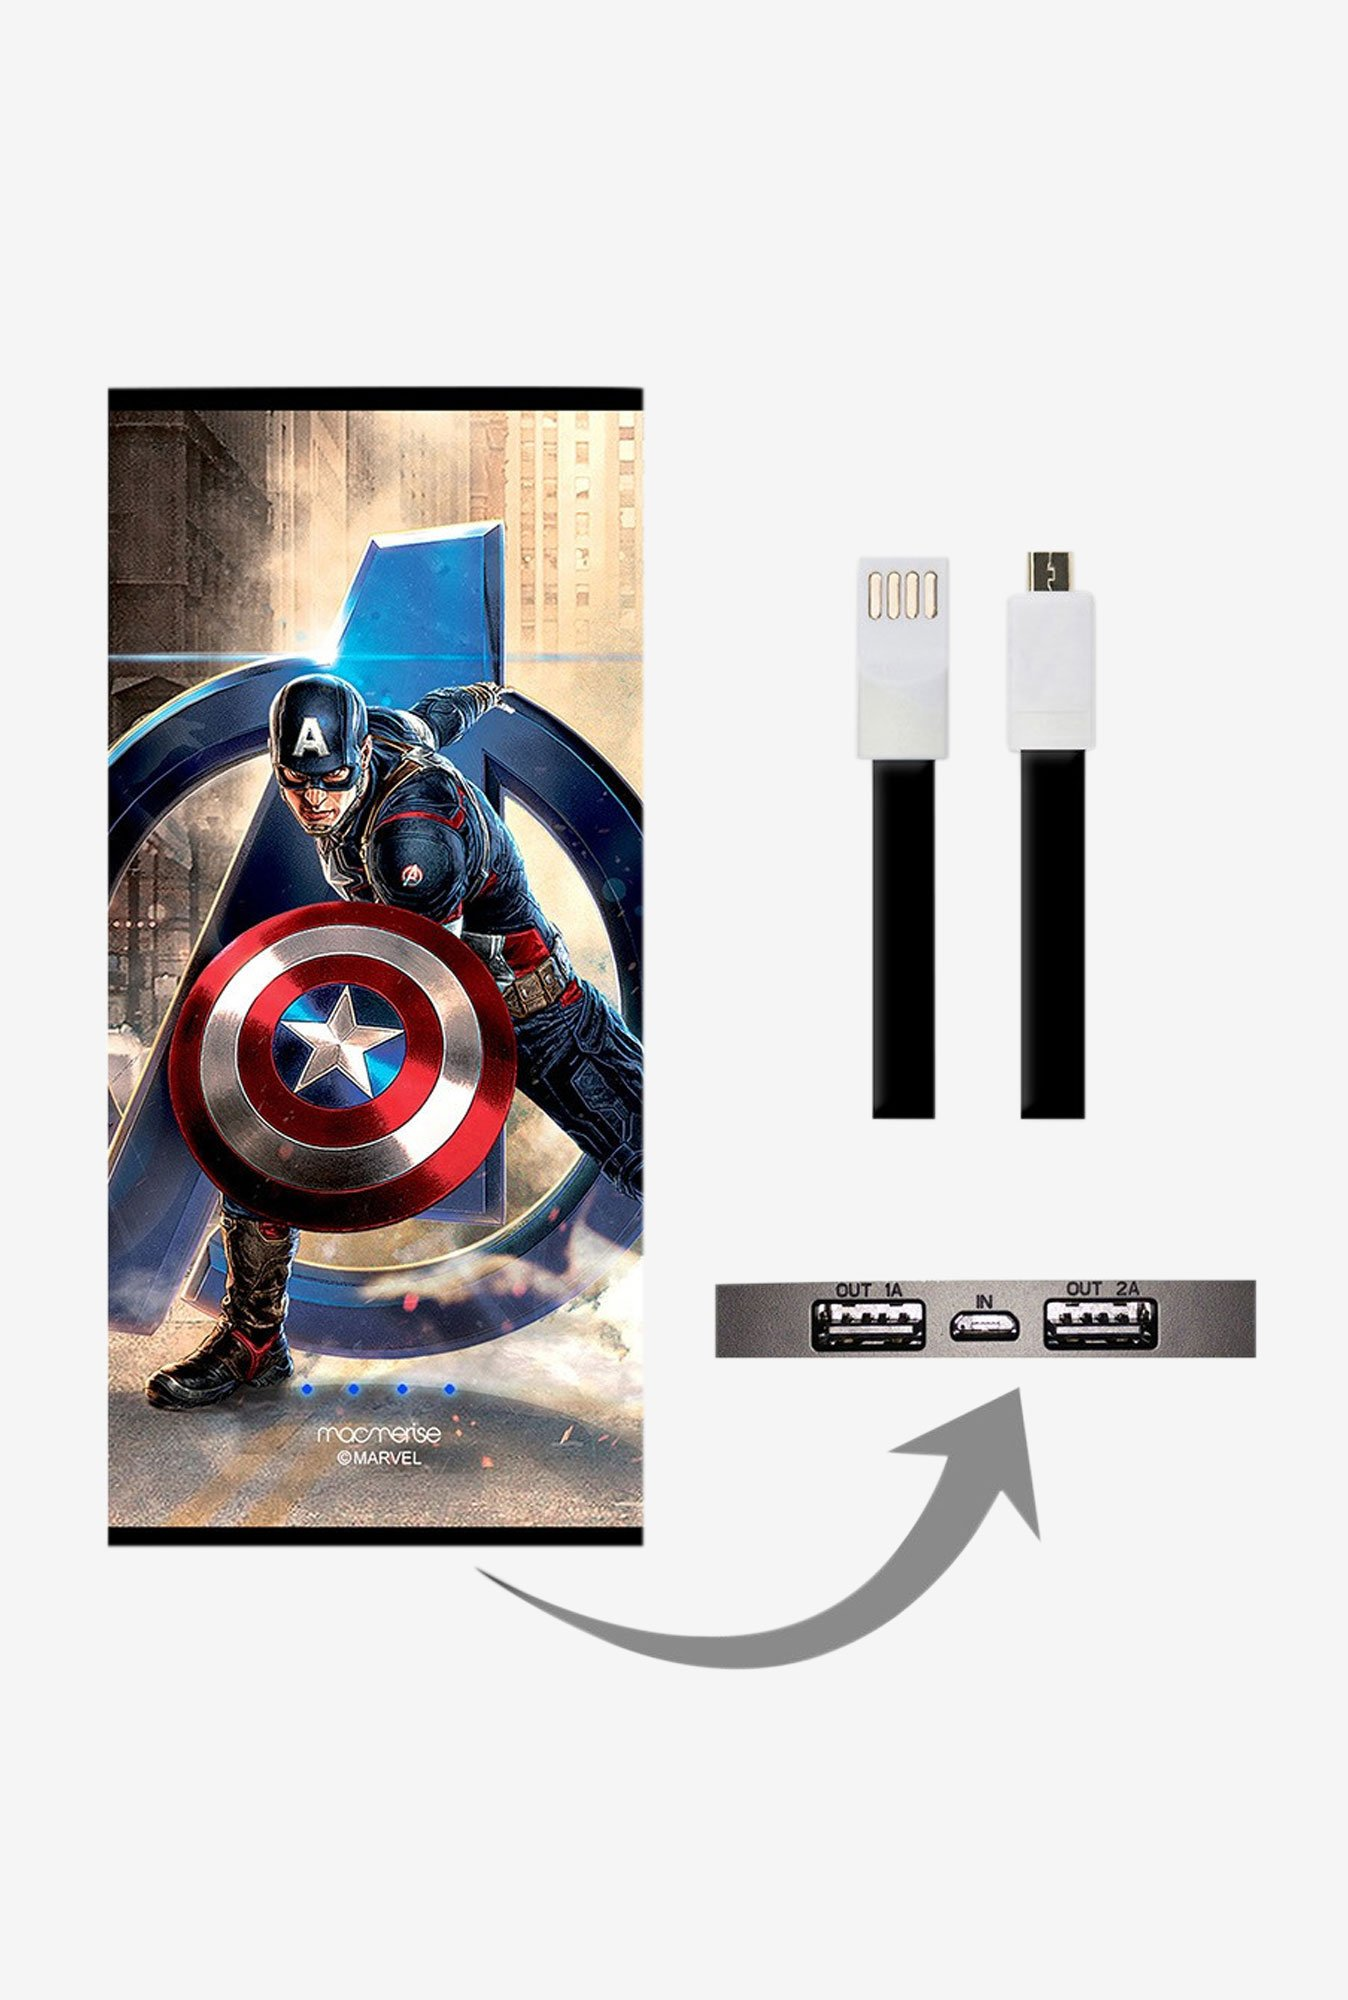 Macmerise Super Soldier 8000 mAh Universal Power Bank